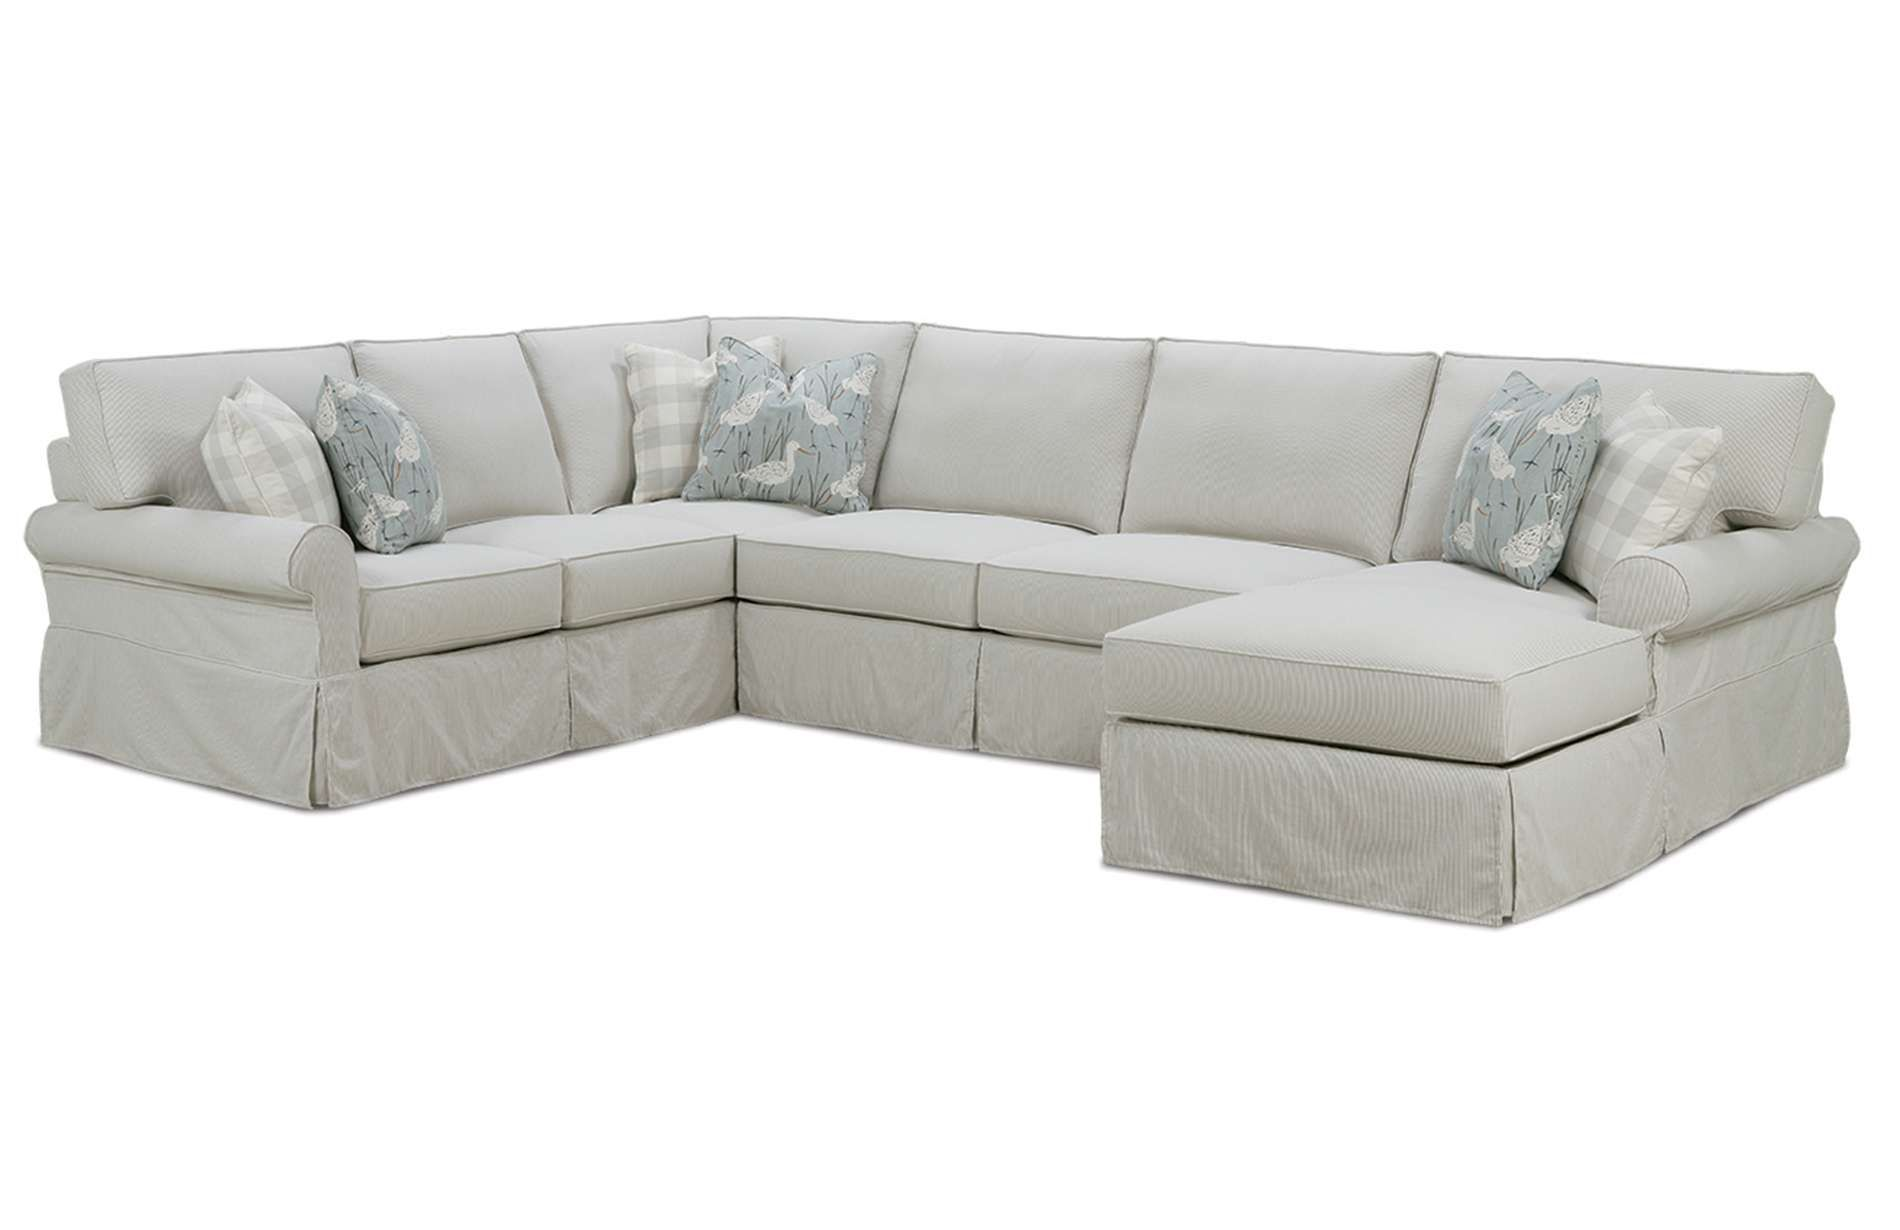 The Easton Slipcover Sectional Sofa Is Perfect Centerpiece For A Living Room This Modern